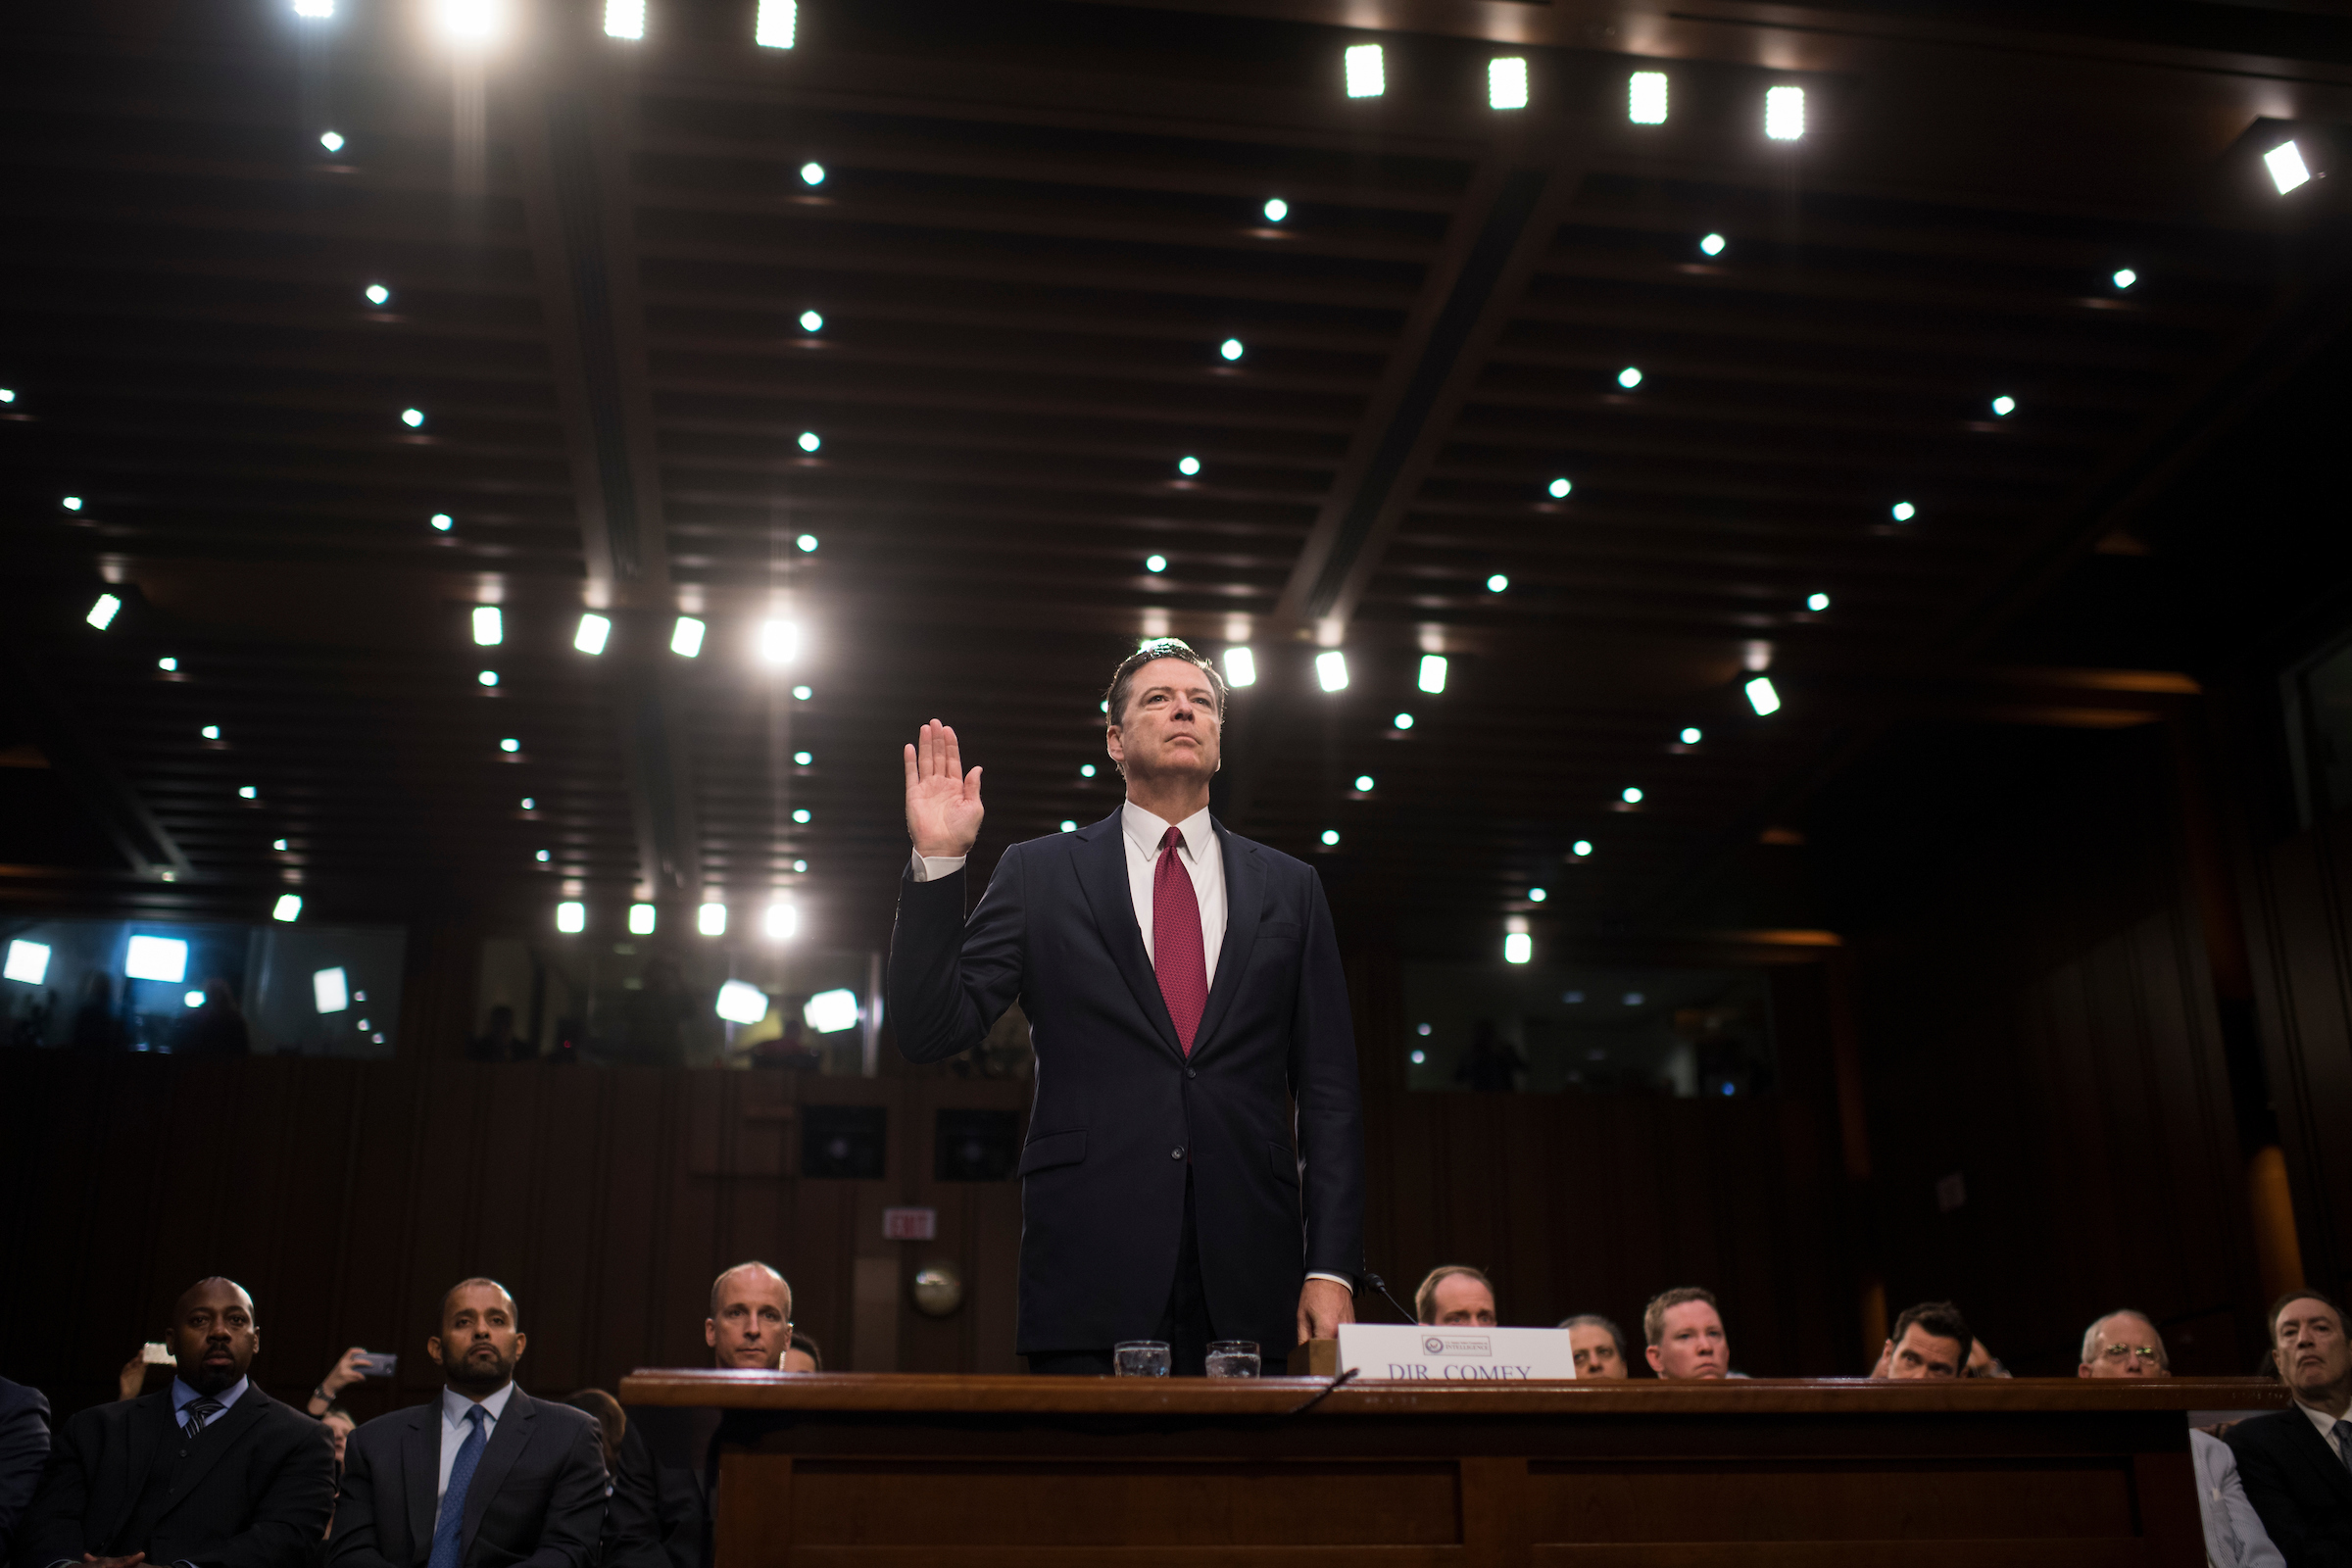 Former FBI Director James B. Comey is sworn in before testifying about President Donald Trump's possible campaign ties to Russia during a Senate Intelligence Committee hearing on Thursday. (Tom Williams/CQ Roll Call)